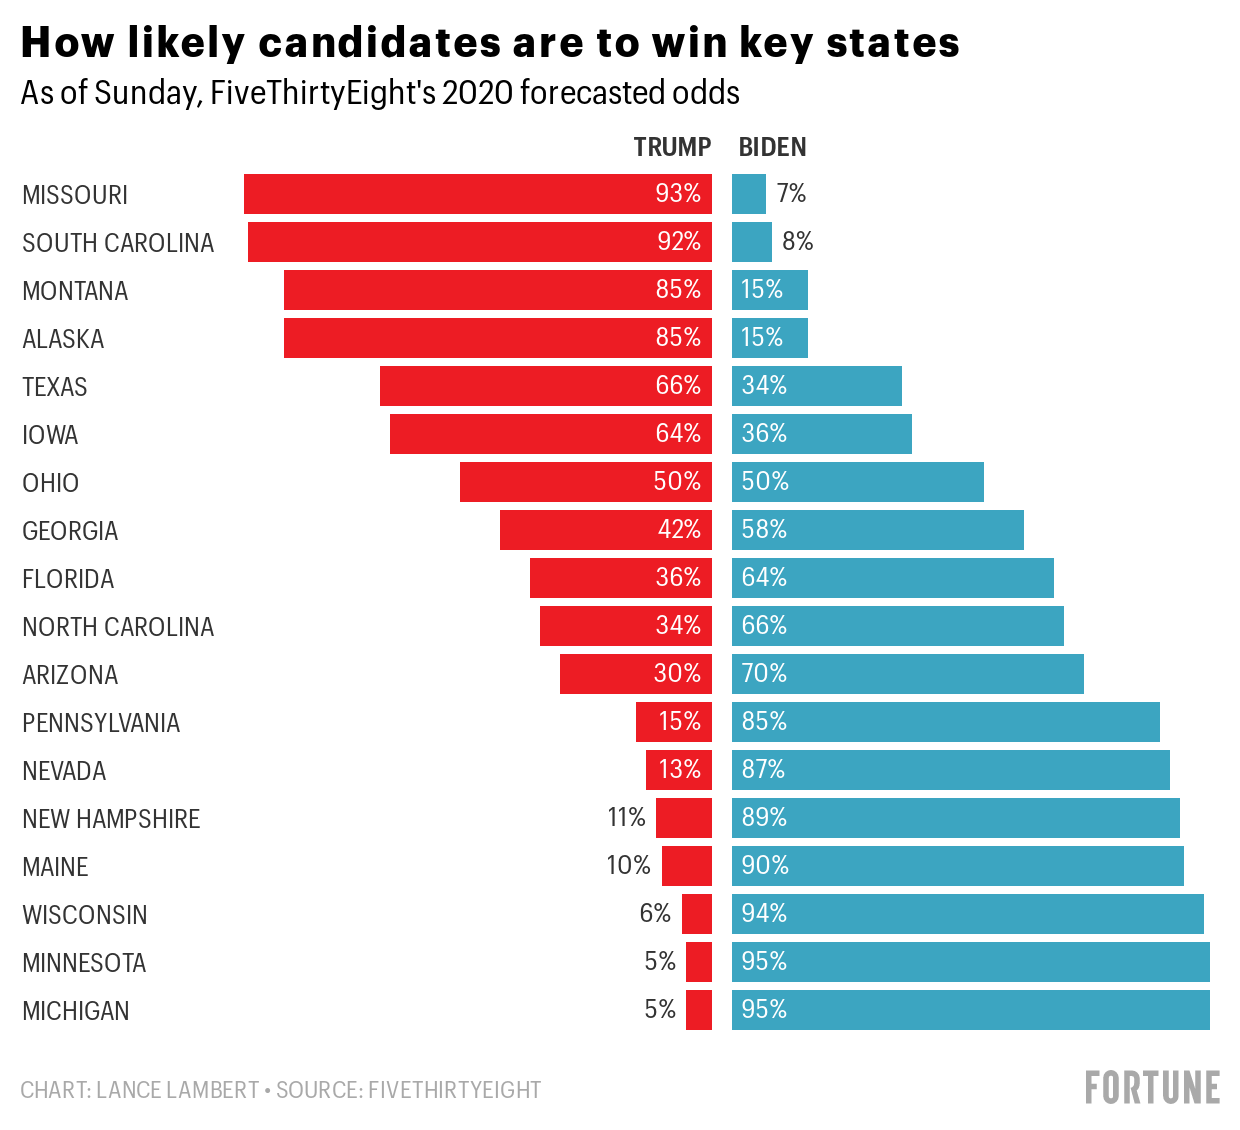 Biden is more likely to win red Montana than Trump is to win key midwestern swing states